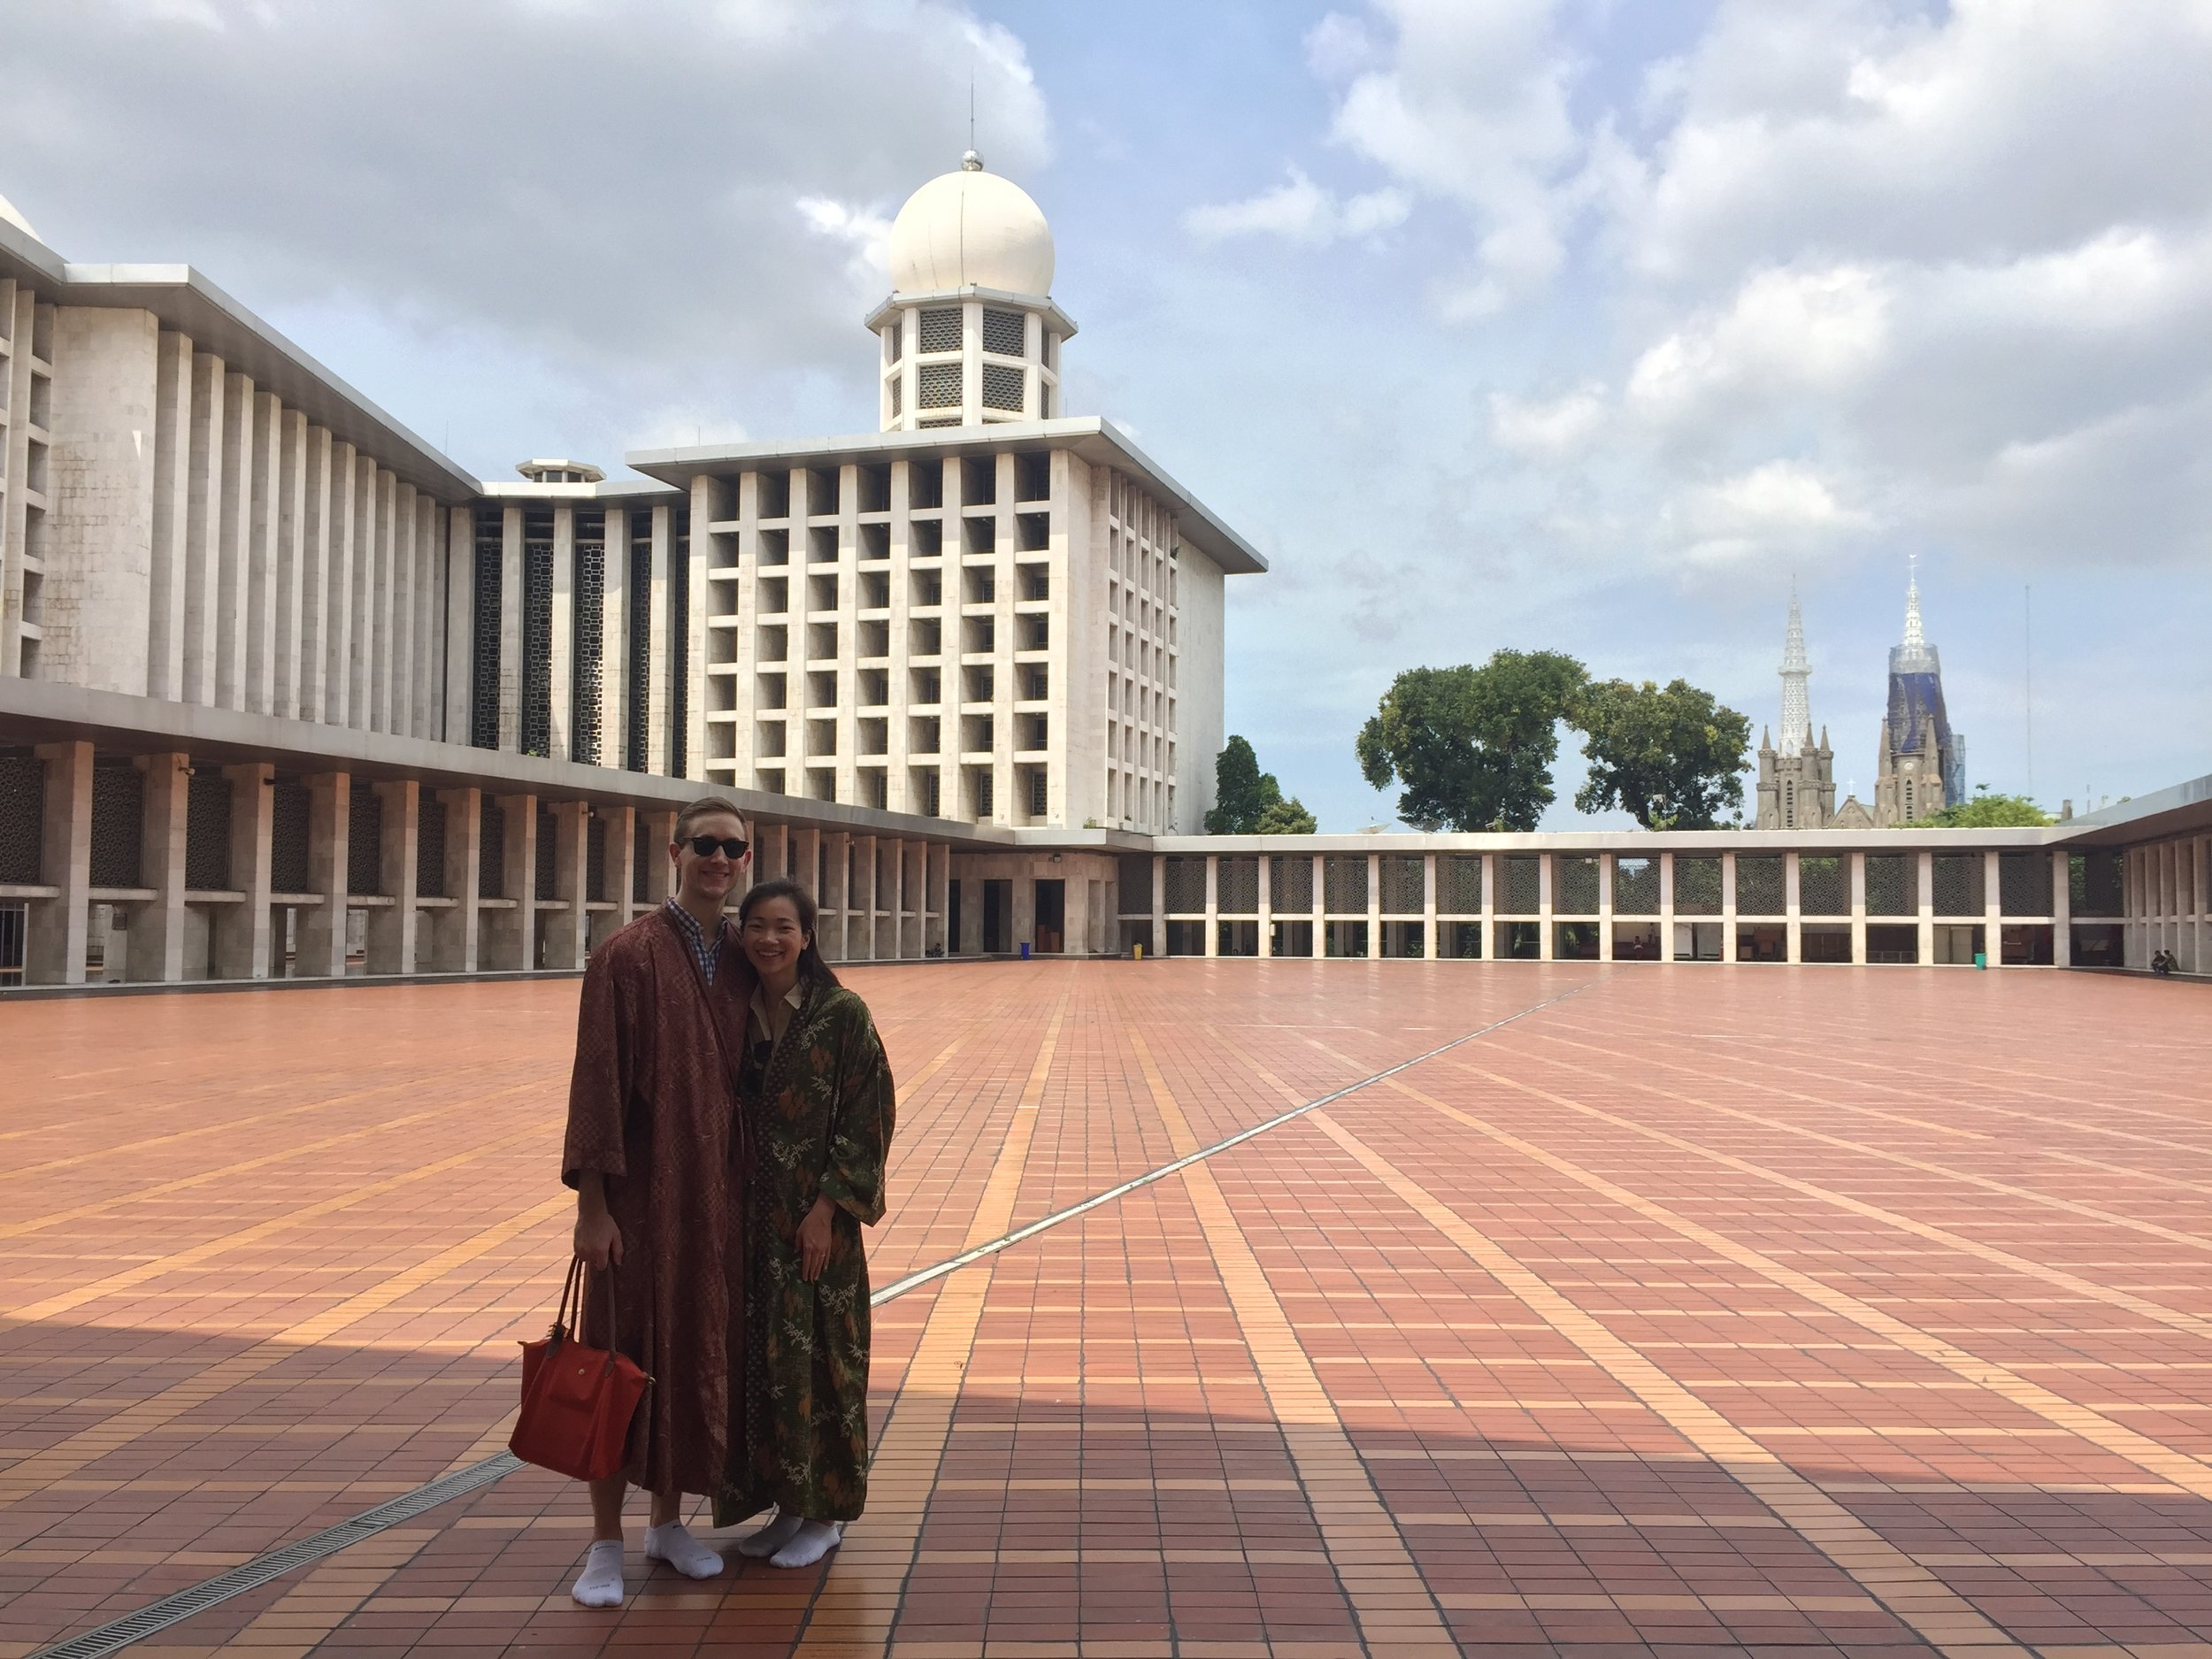 At Istiqlal Mosque (3rd largest mosque in the world)